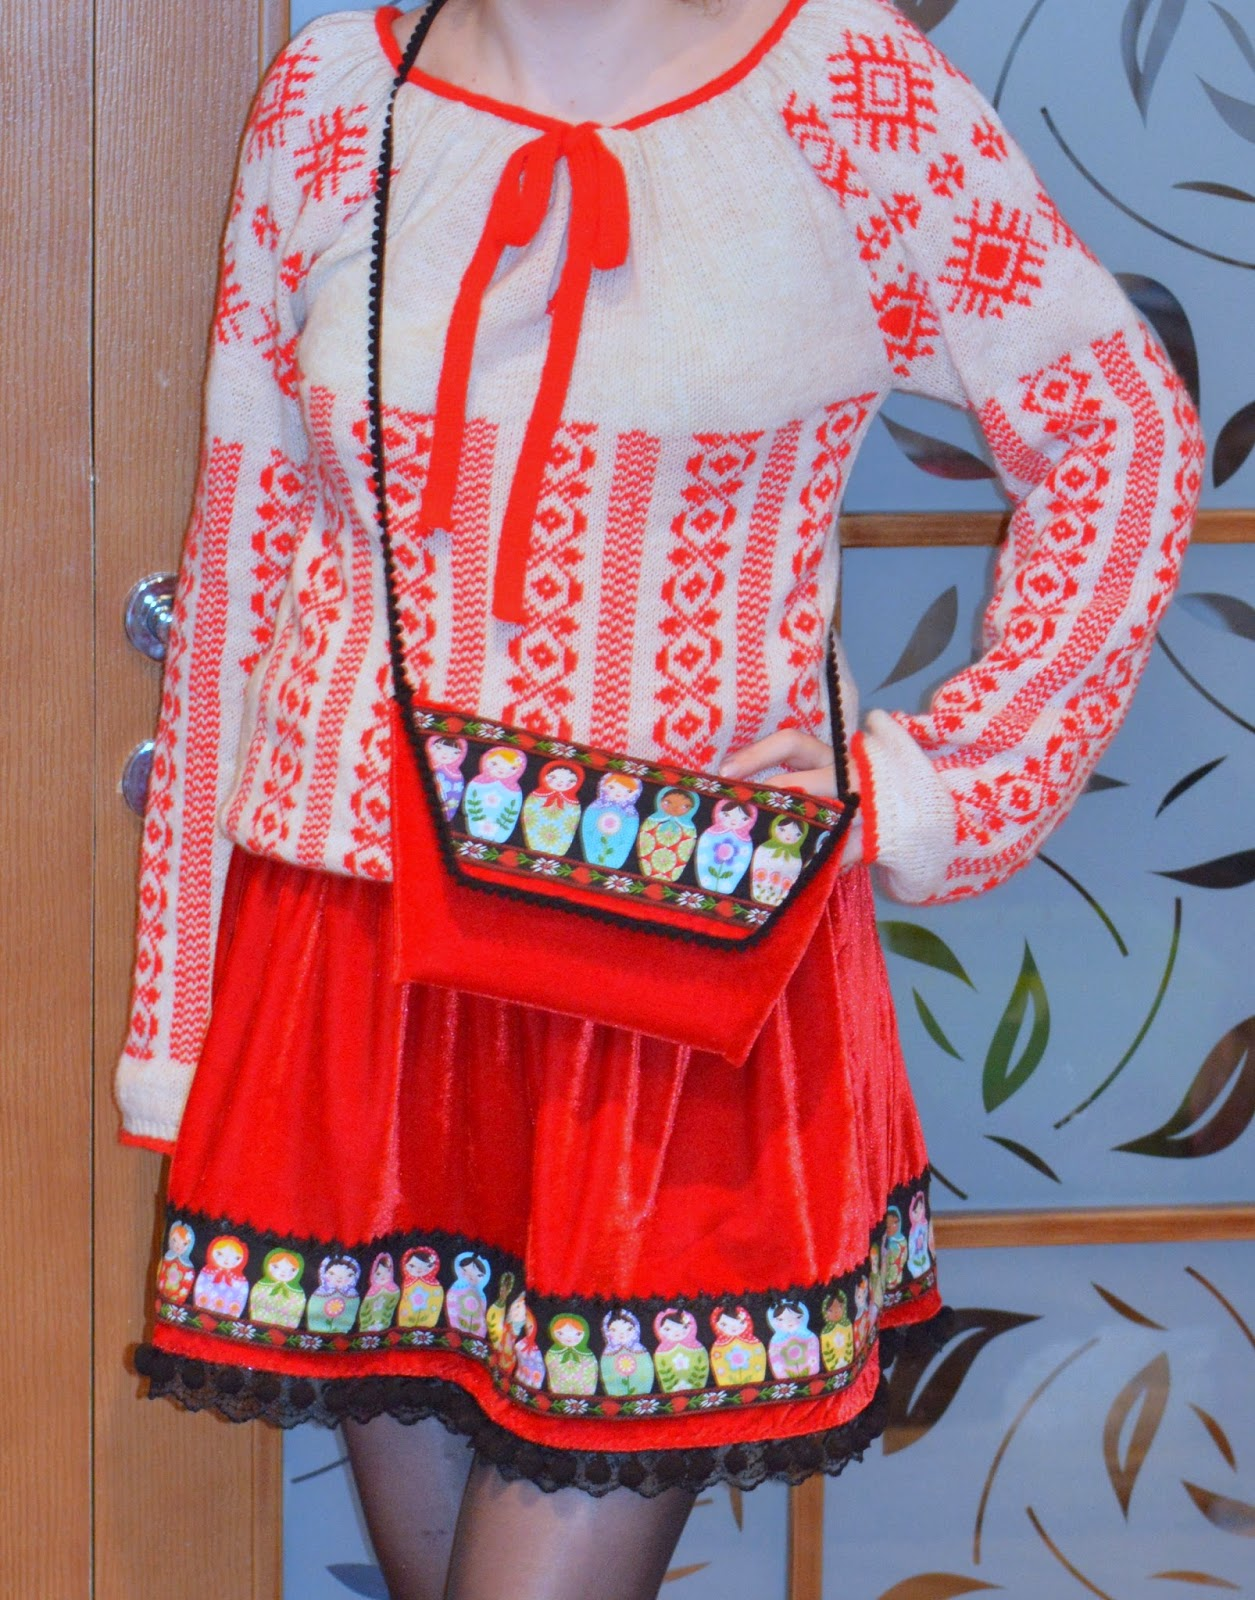 """""""Make It Yours"""" sewing contest, clutch, matryoshka doll, pom poms tape, red velvet, ribbons applique, so sew easy, ie romaneasca traditionala"""